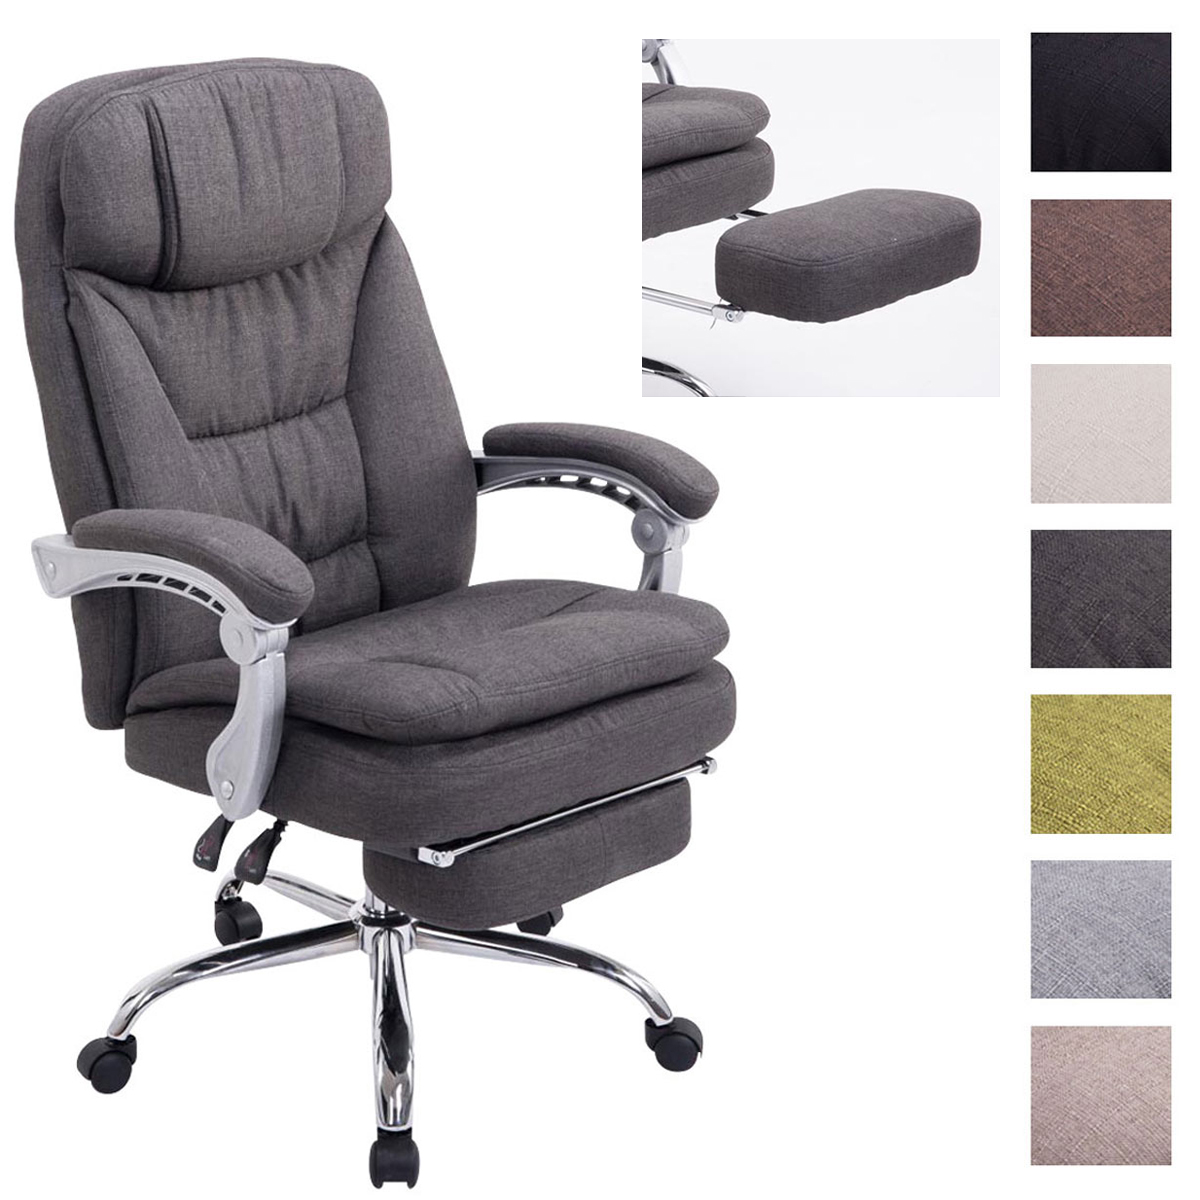 Living Xl Chairs Xl Office Chair Troy Tweed Managerial Executive Gaming